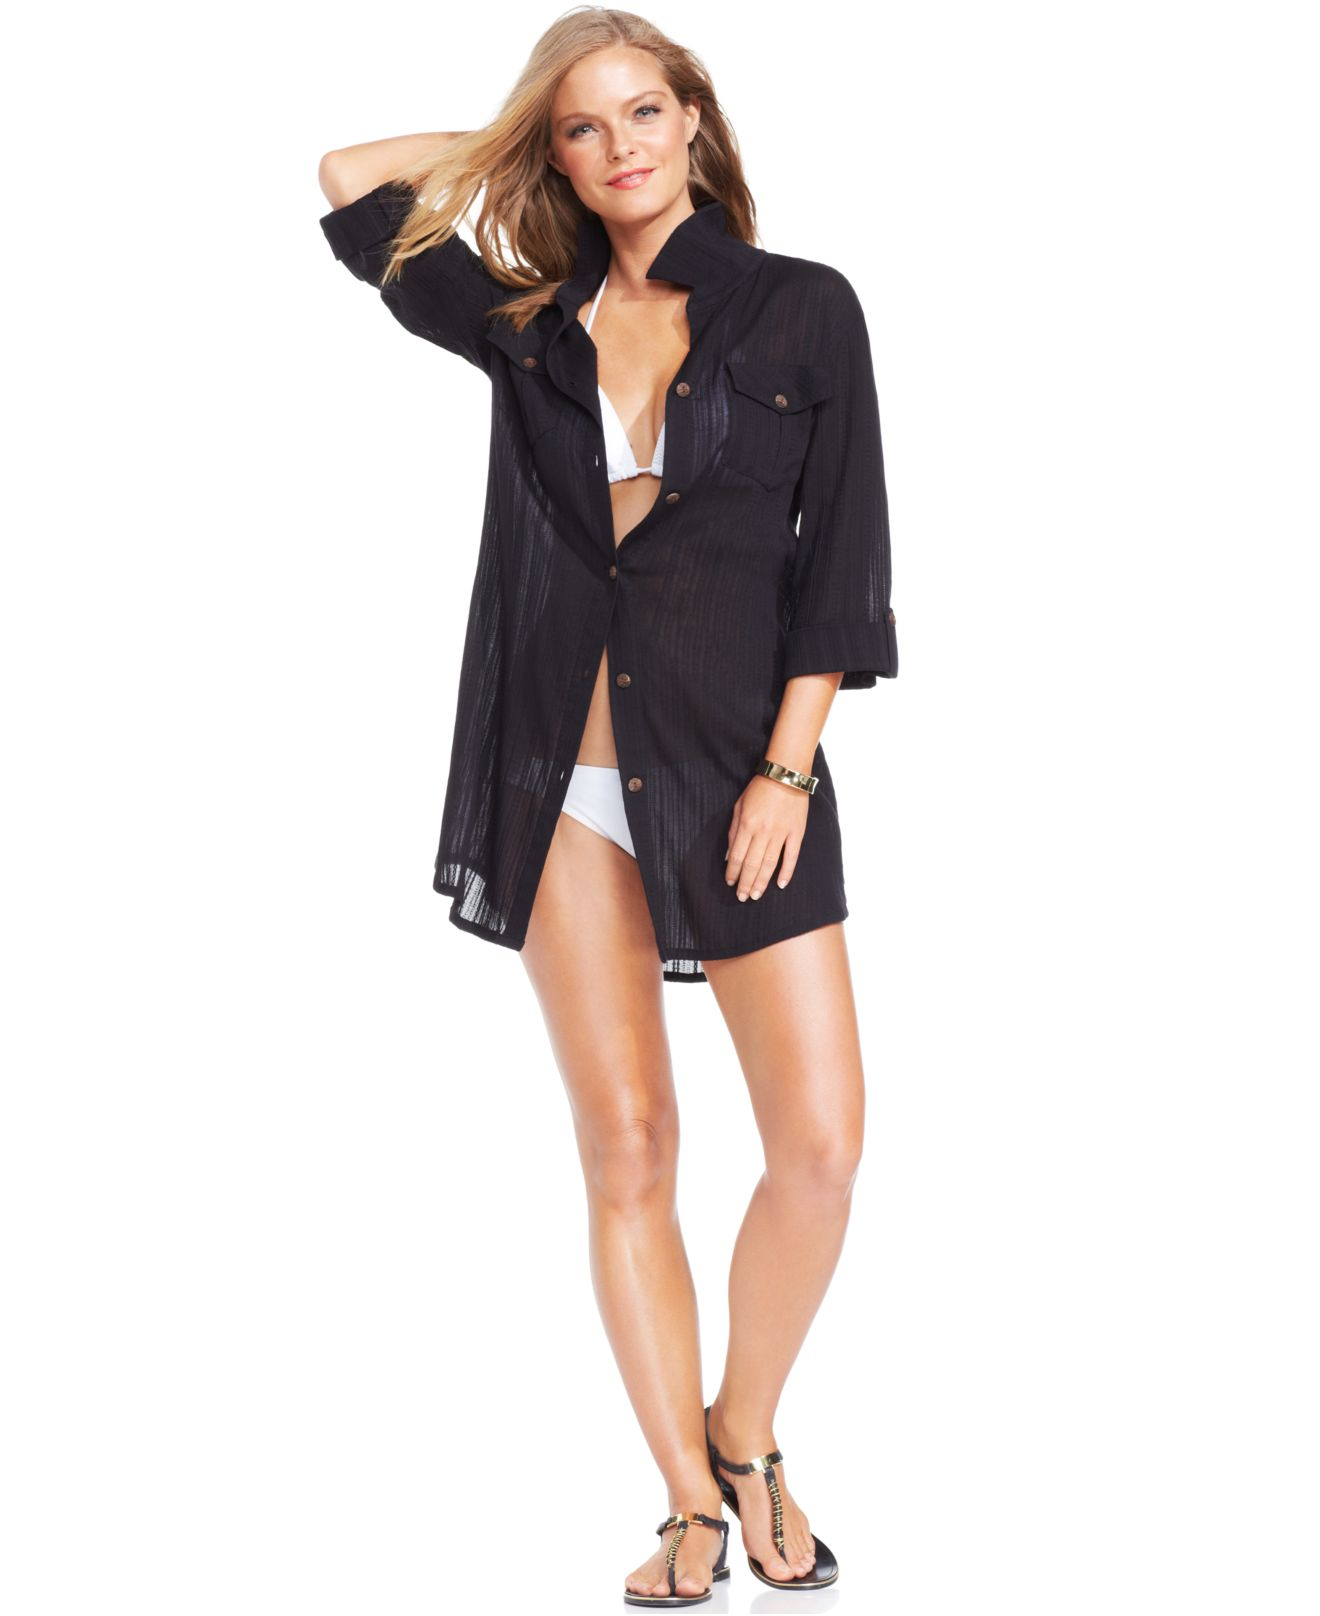 245f5dac9bd Lyst - Dotti Shirtdress Cover-up in Black